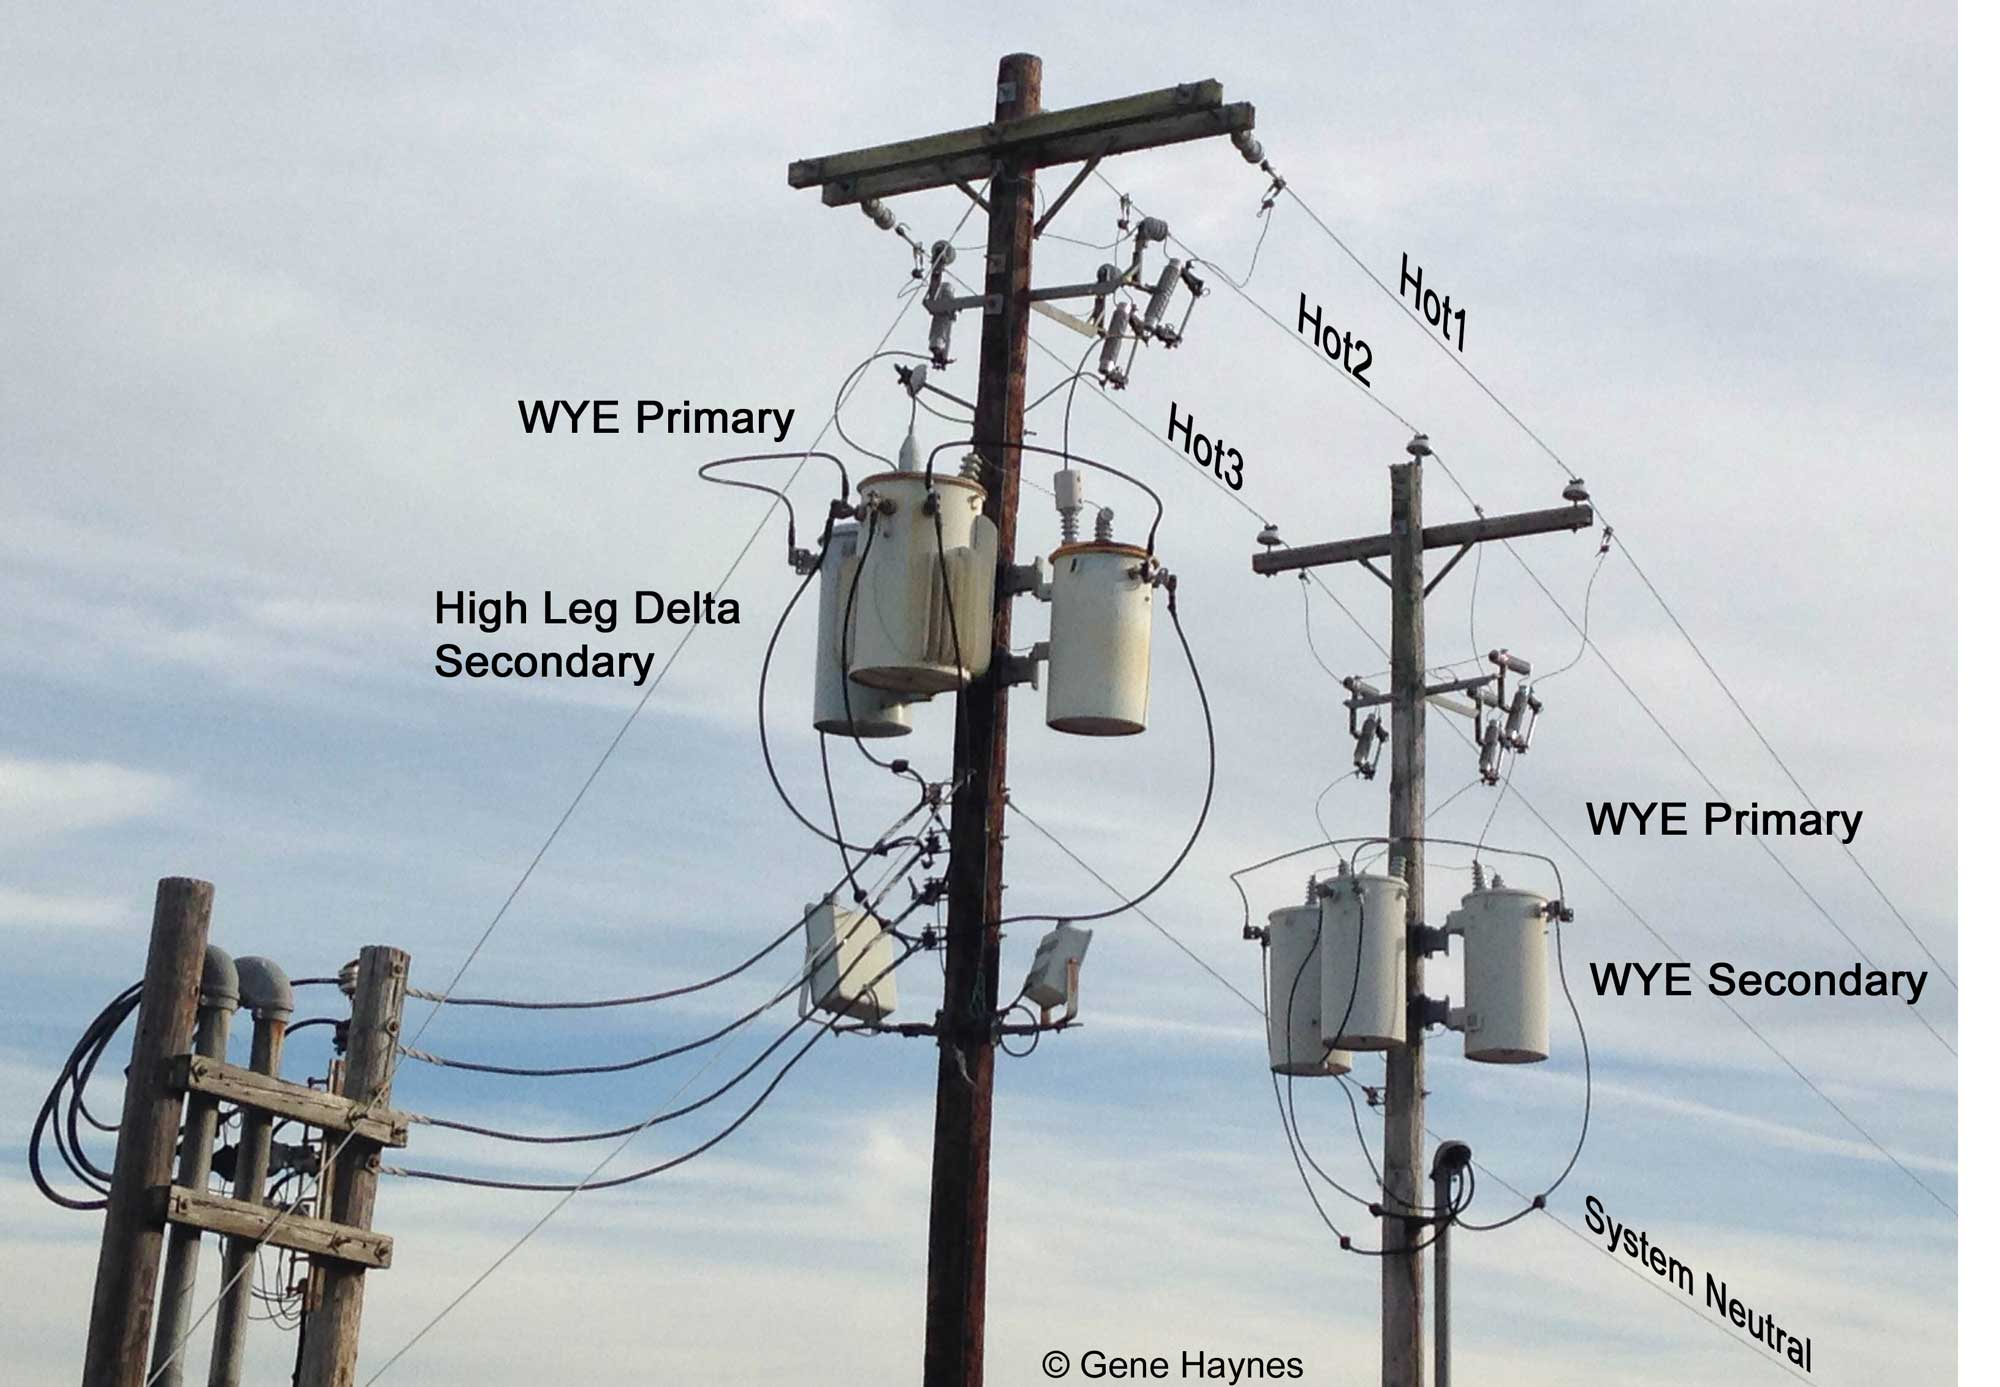 Delta Bank Wired Open Transformer Wiring Diagram Wye And Services High Leg Wires Come Off Center Wire Comes